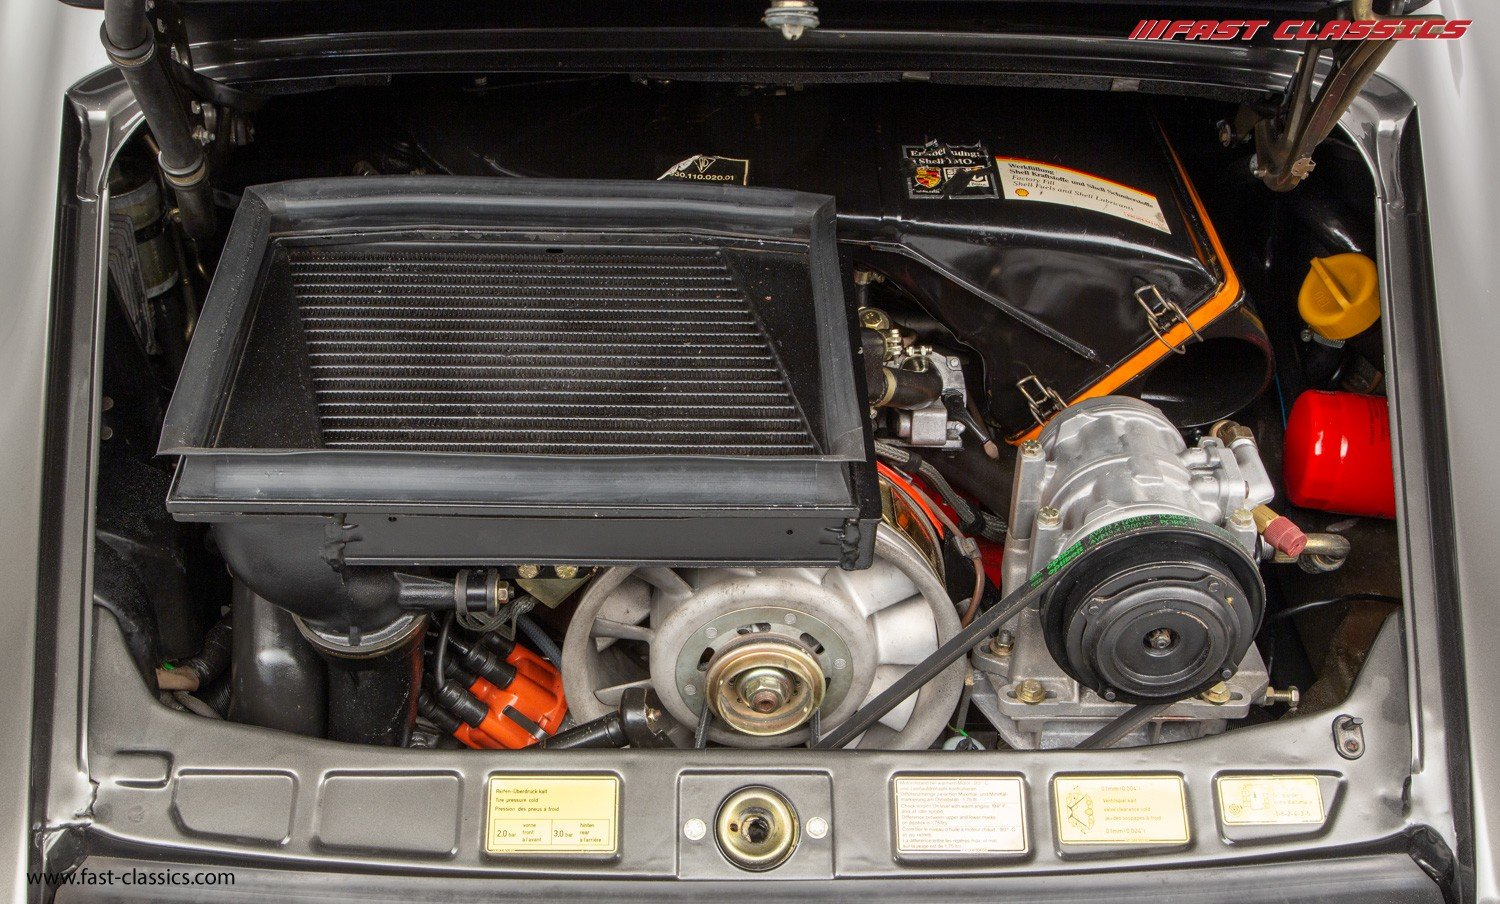 1990 PORSCHE 911 TURBO CABR // SLATE GREY // G50 GEARBOX  For Sale (picture 6 of 6)